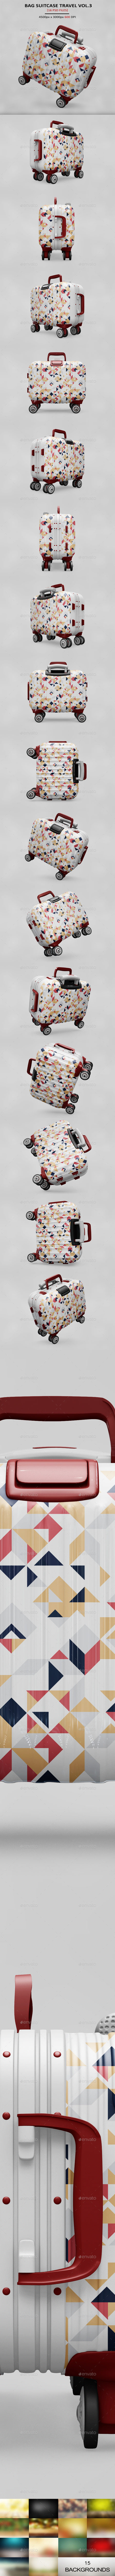 GraphicRiver Bag Suitcase Travel MockUp 20650036